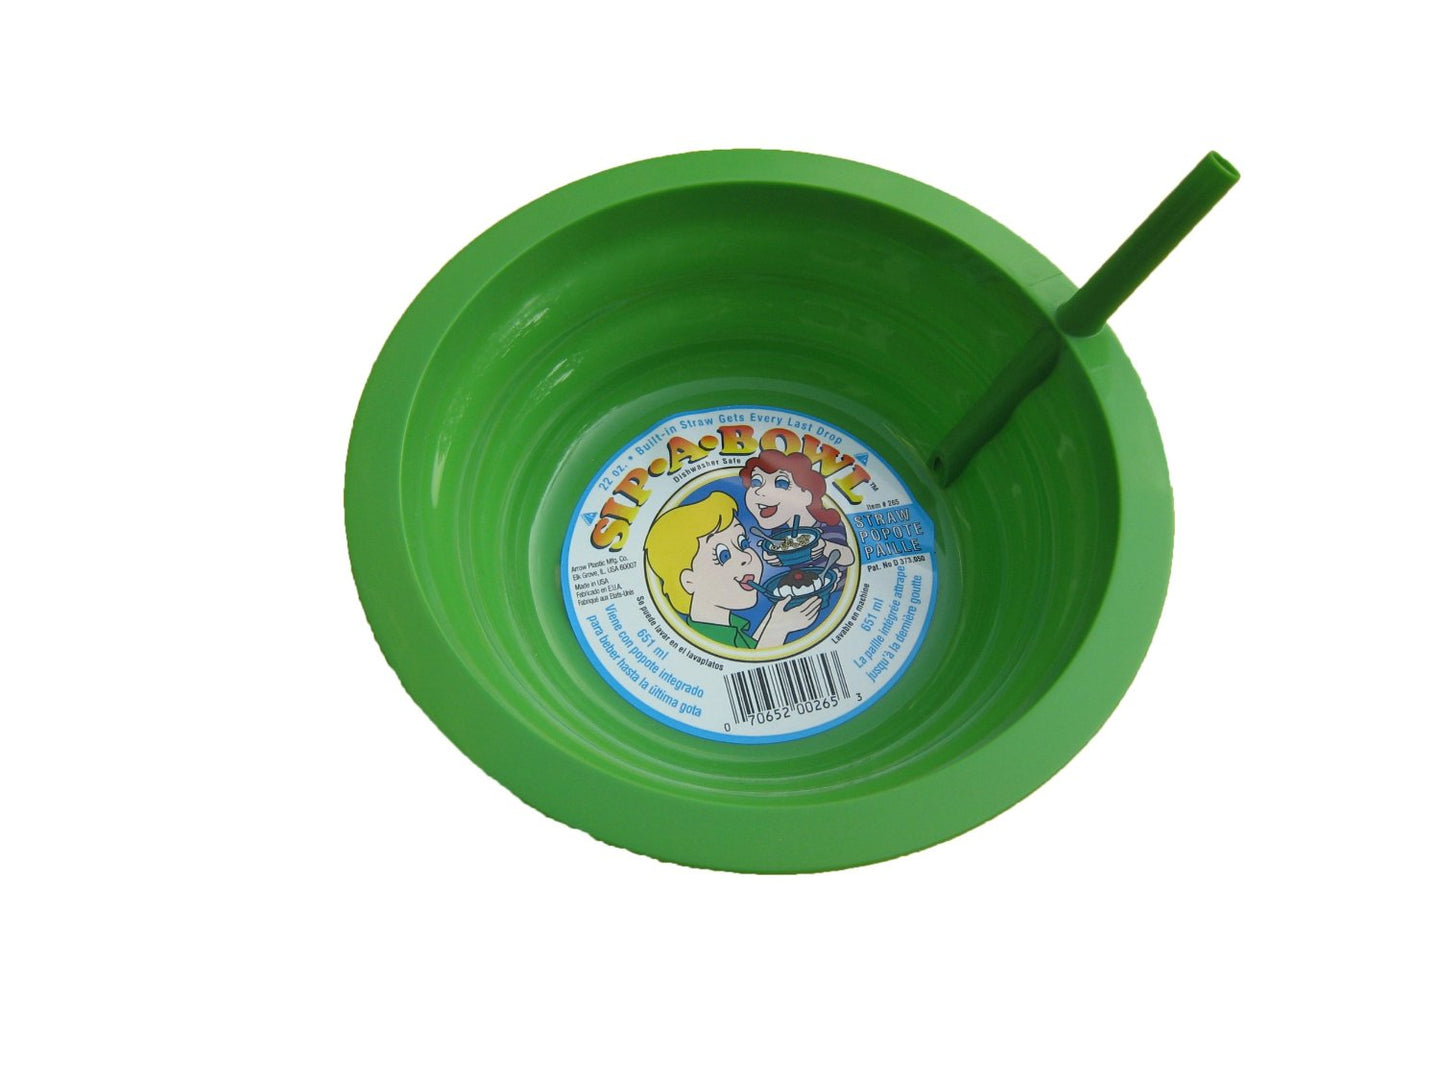 Sip-A-Bowl Cereal Bowl w/Built-In Straw